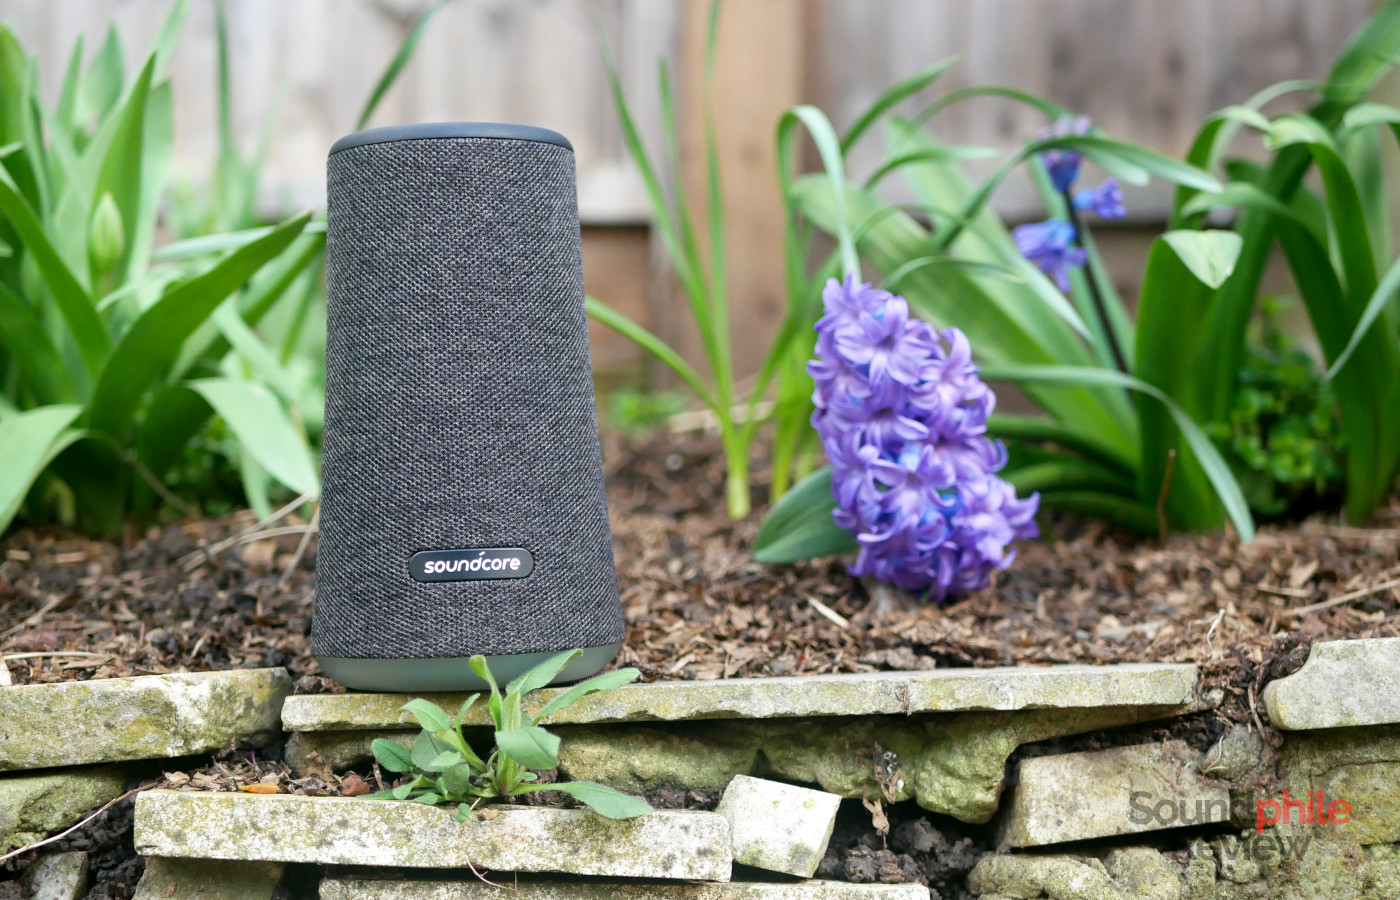 SoundCore Flare+ review